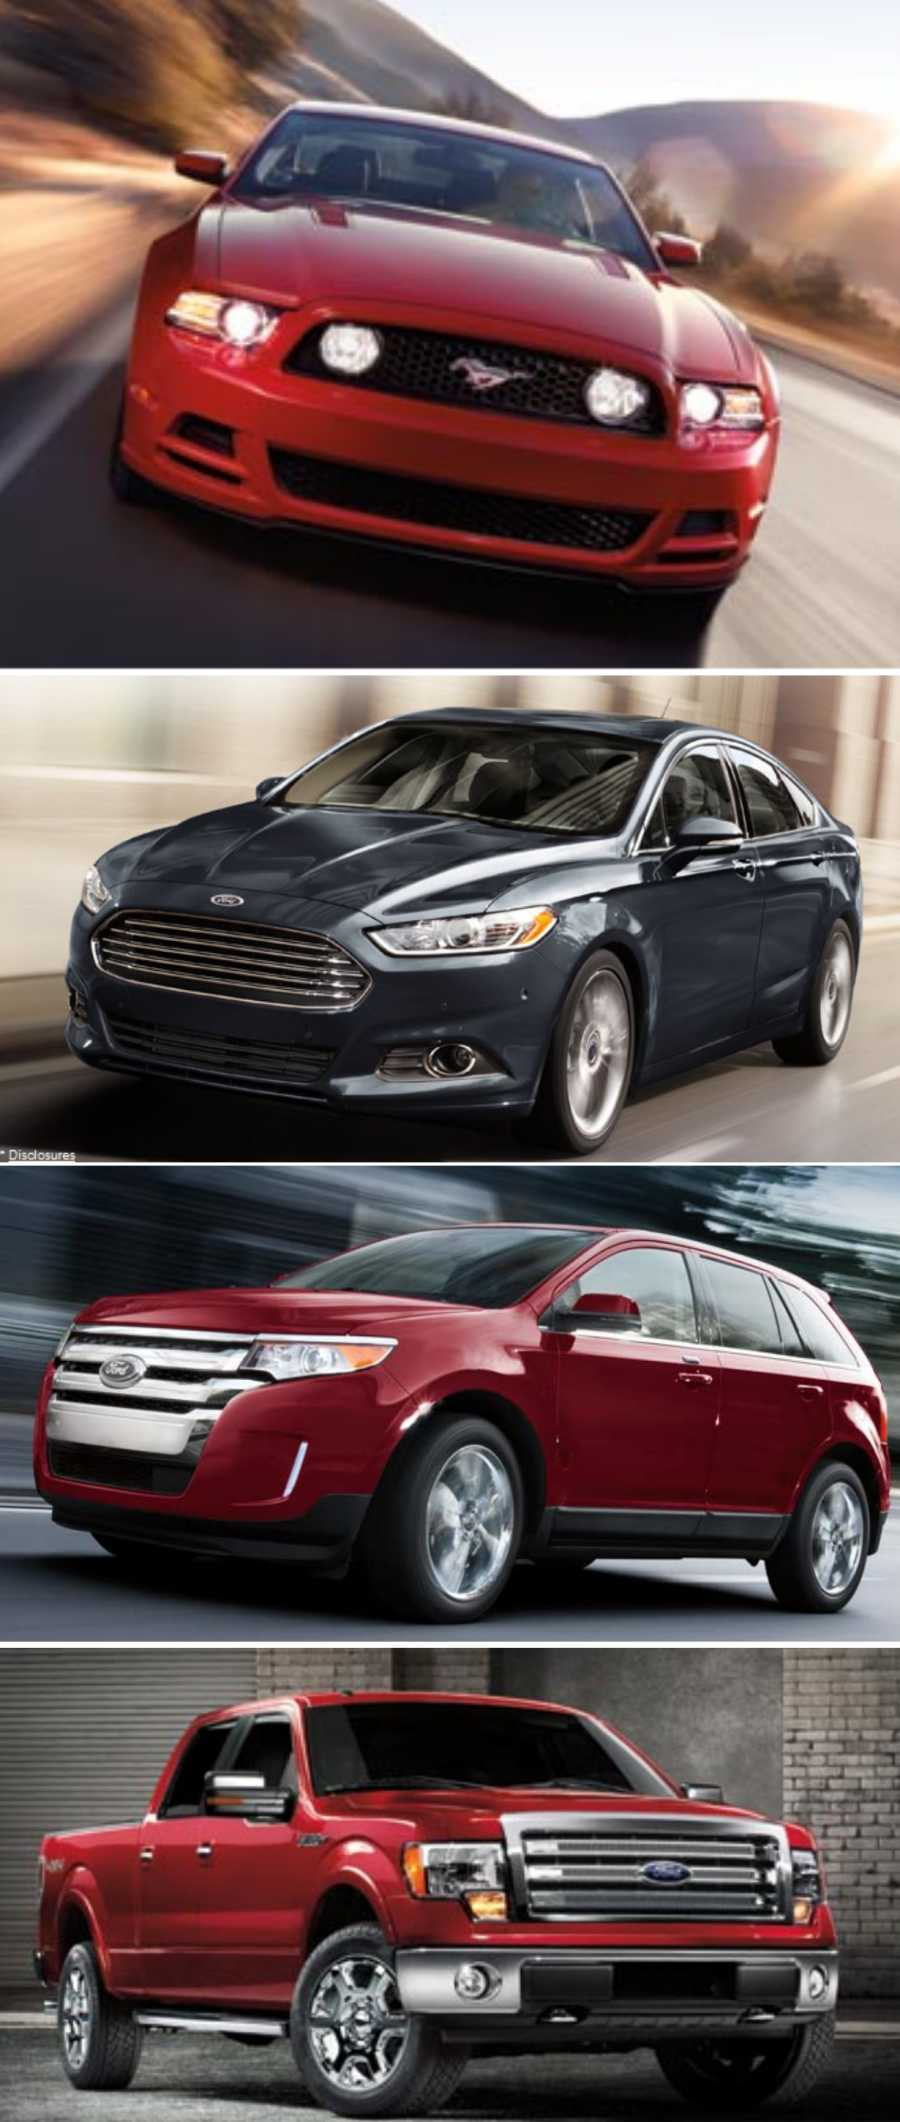 ford dealership in dallas tx serving the ford sales service needs of. Cars Review. Best American Auto & Cars Review